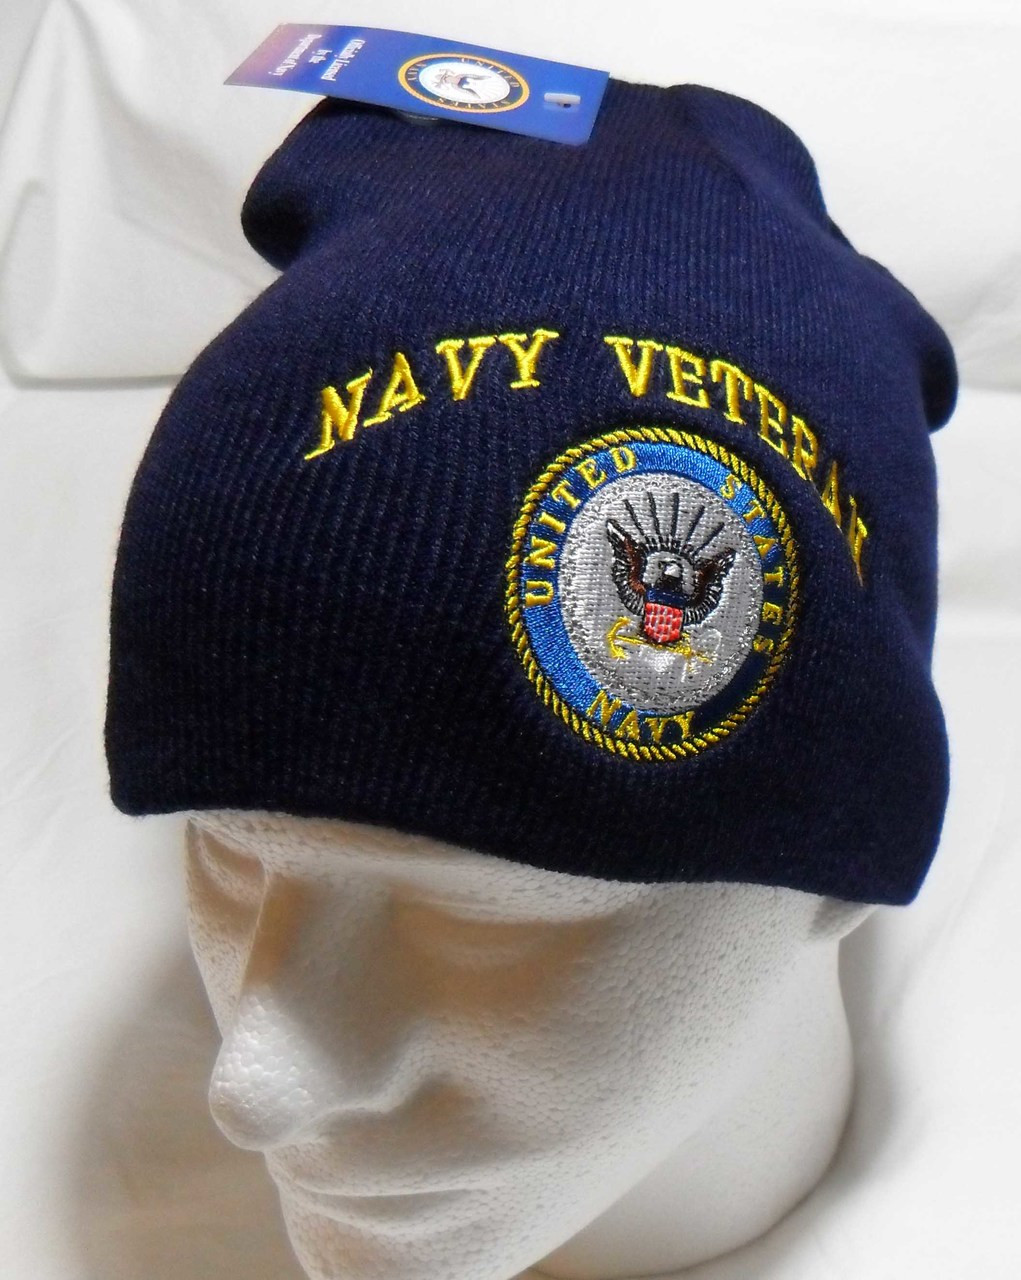 U.S. Navy Veteran Watch Cap Beanie Winter Ski Hat Toboggan Officially  Licensed d48eda6149c